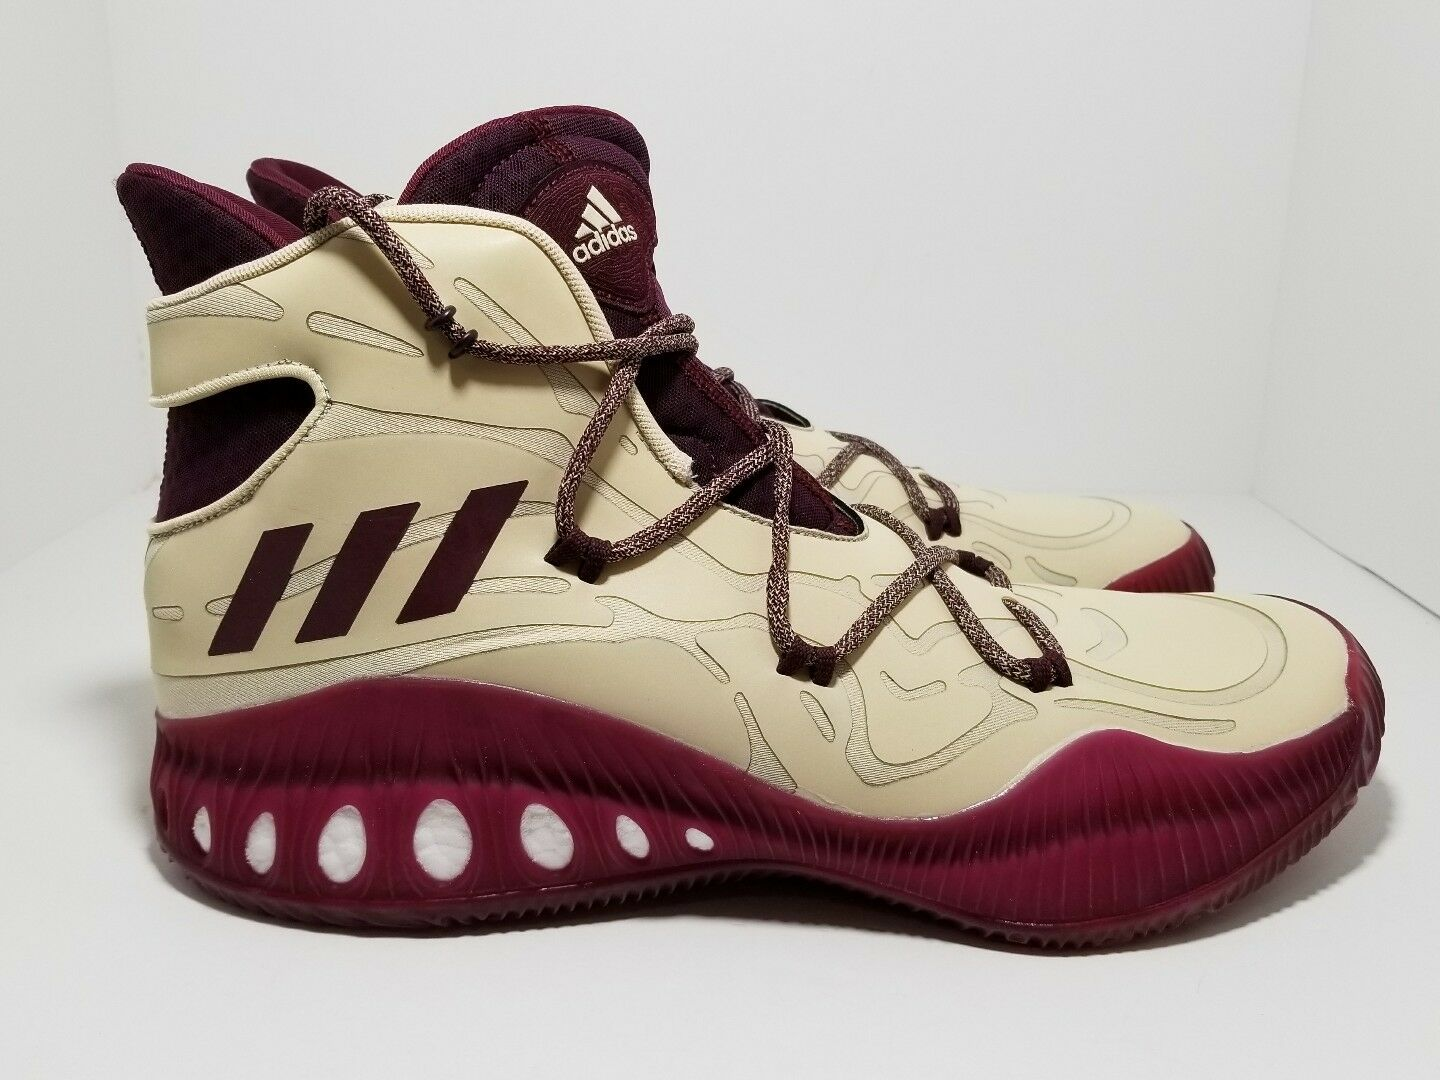 Adidas Crazy Explosive Boost 2016 Xeno Maroon B39467 Men's Shoe Comfortable best-selling model of the brand